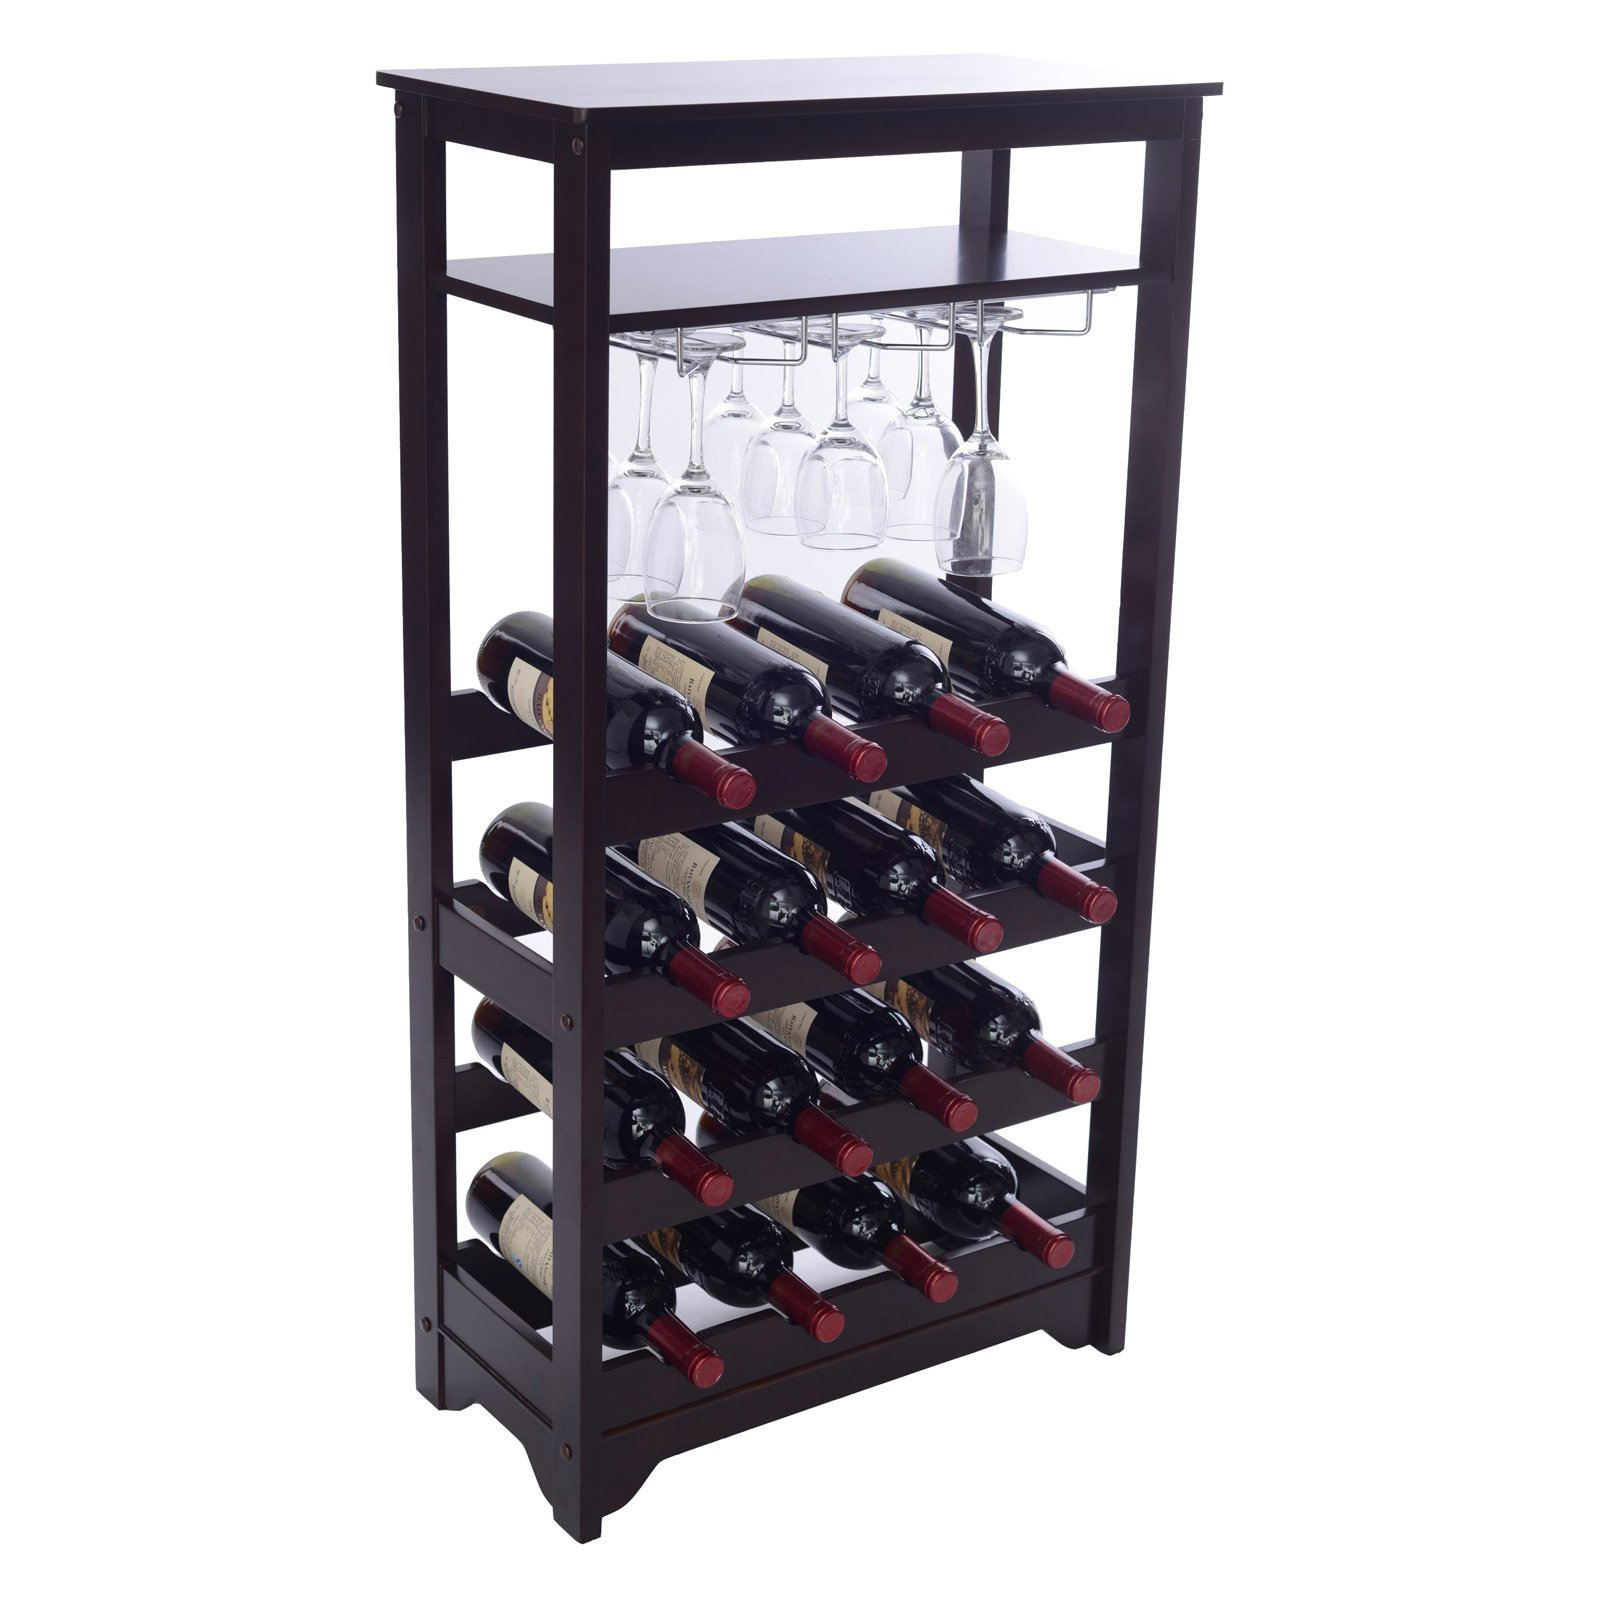 Northbeam Wine Rack with Stem Glassware Holder by Merry Products